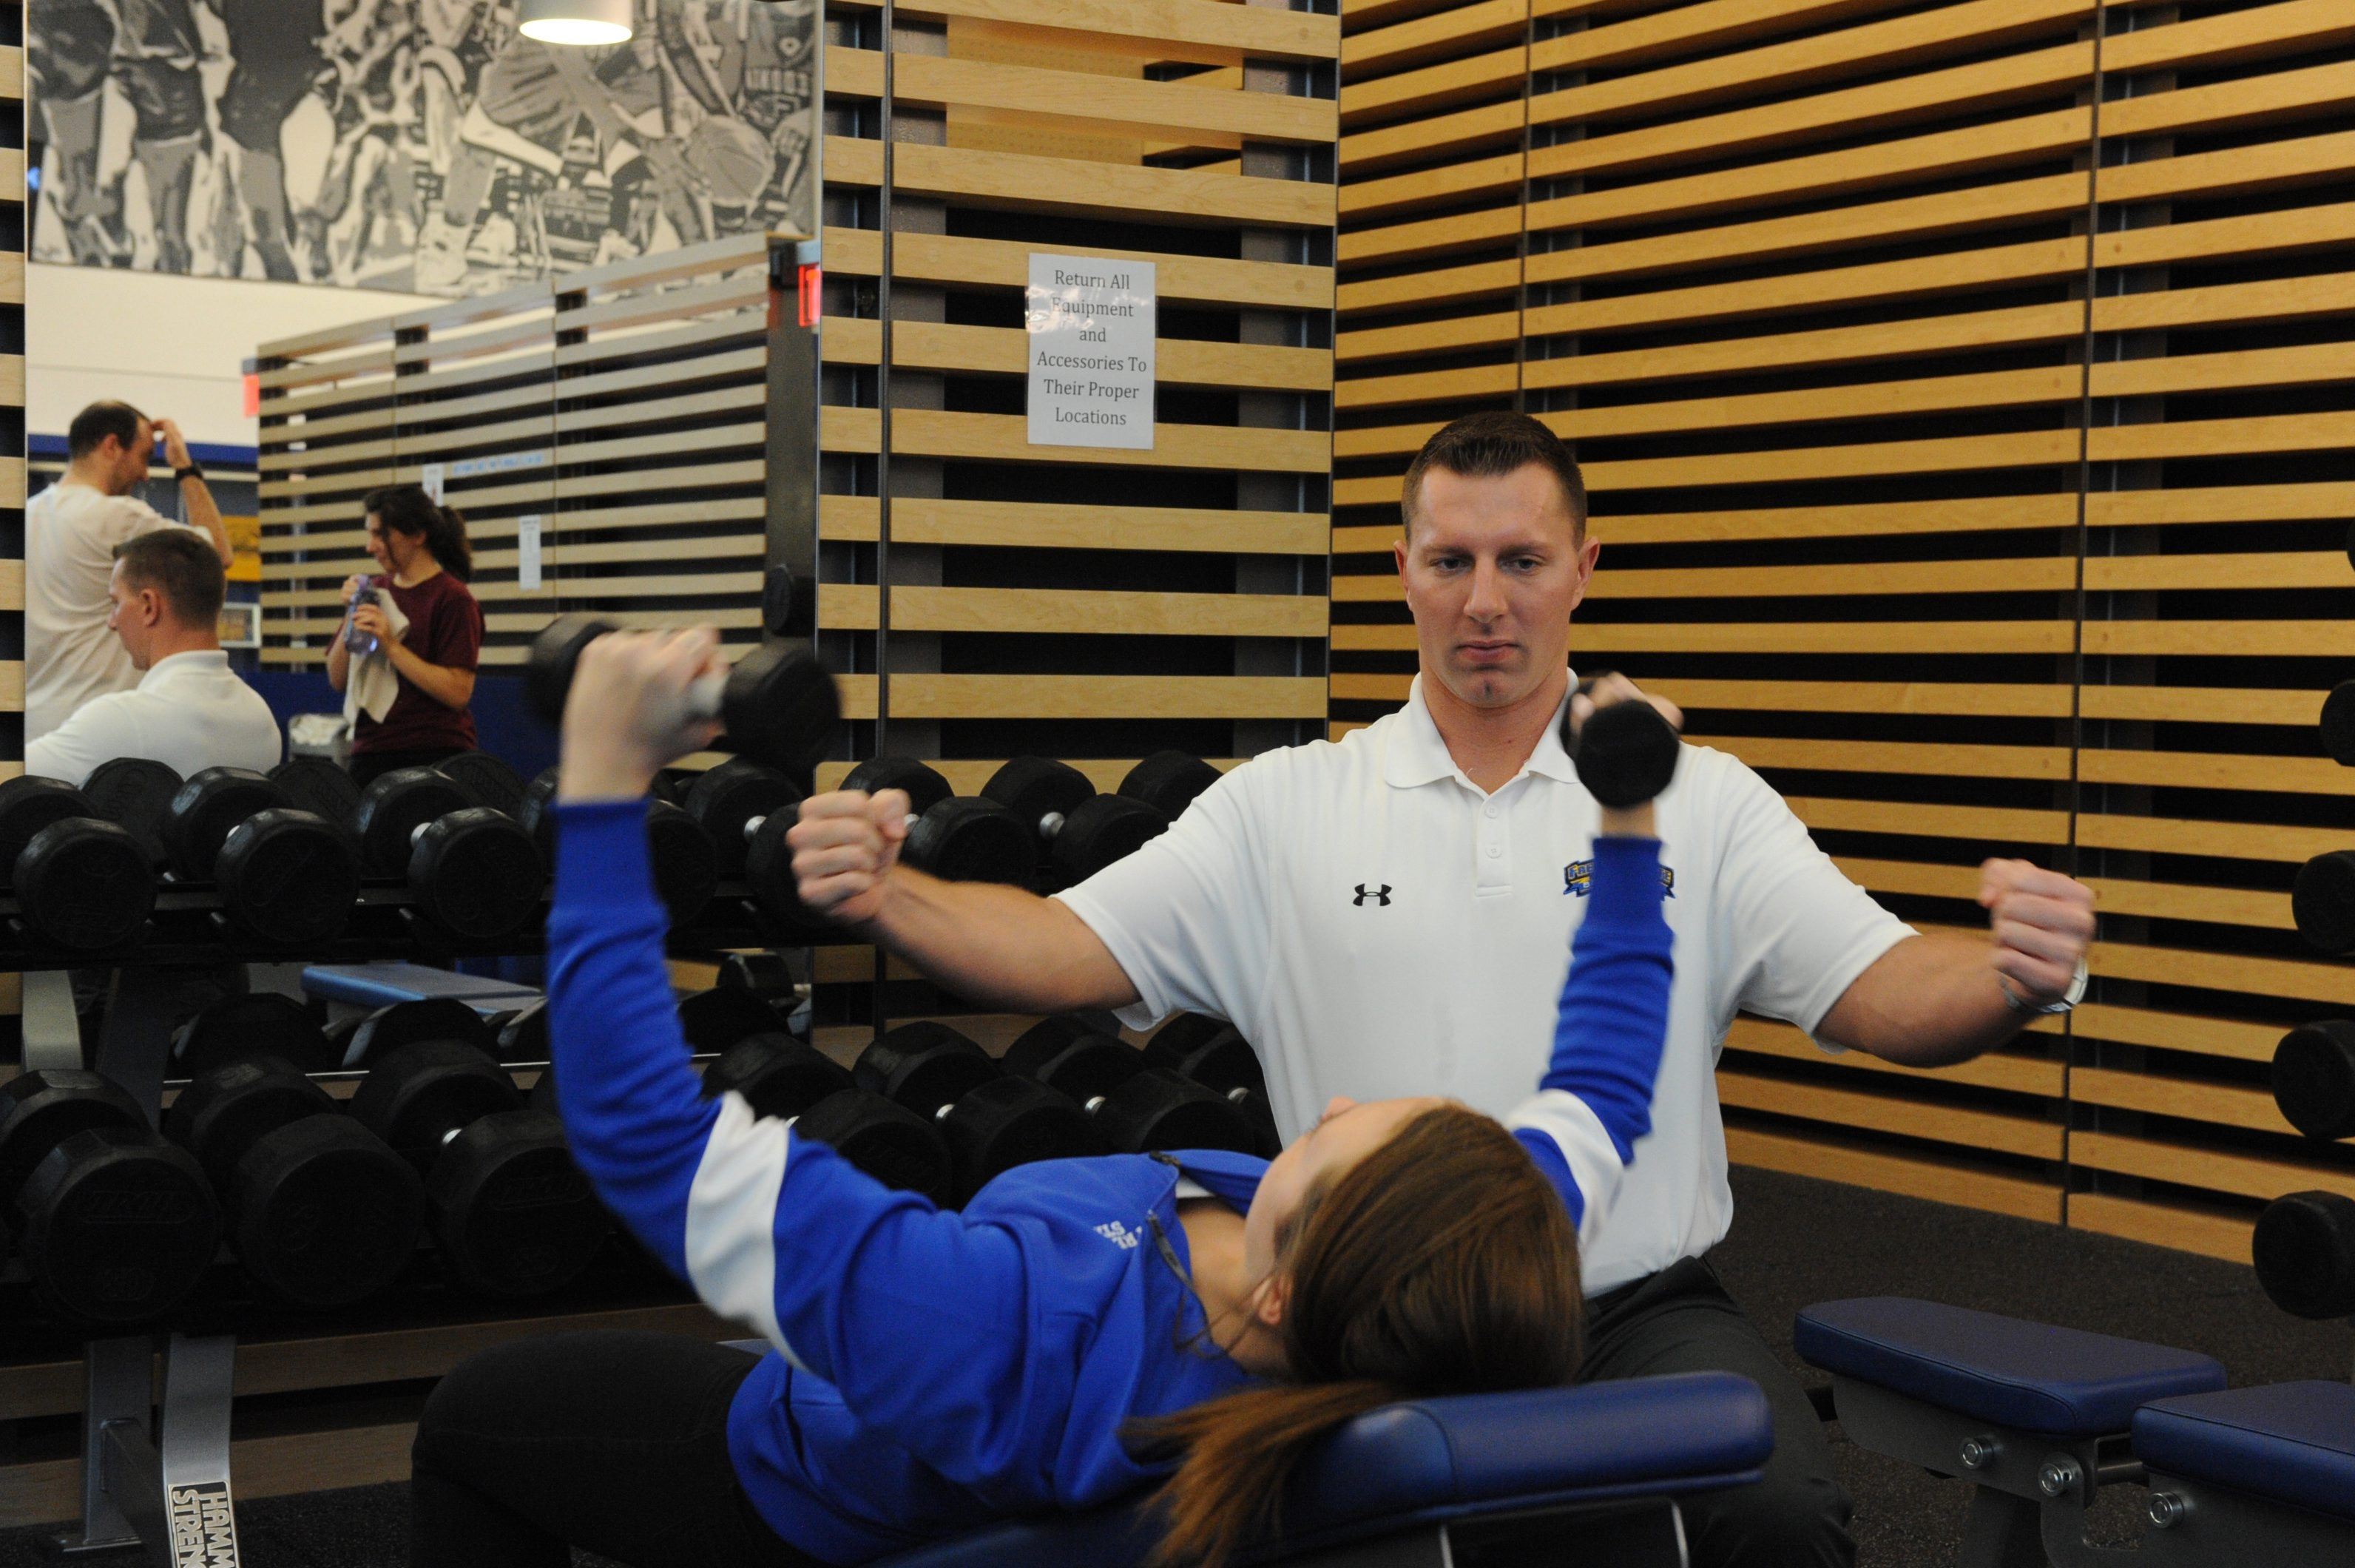 Jason Bishoff, director of the fitness center at Fredonia State College, works with Olivia Phillips, who is majoring in exercise science.